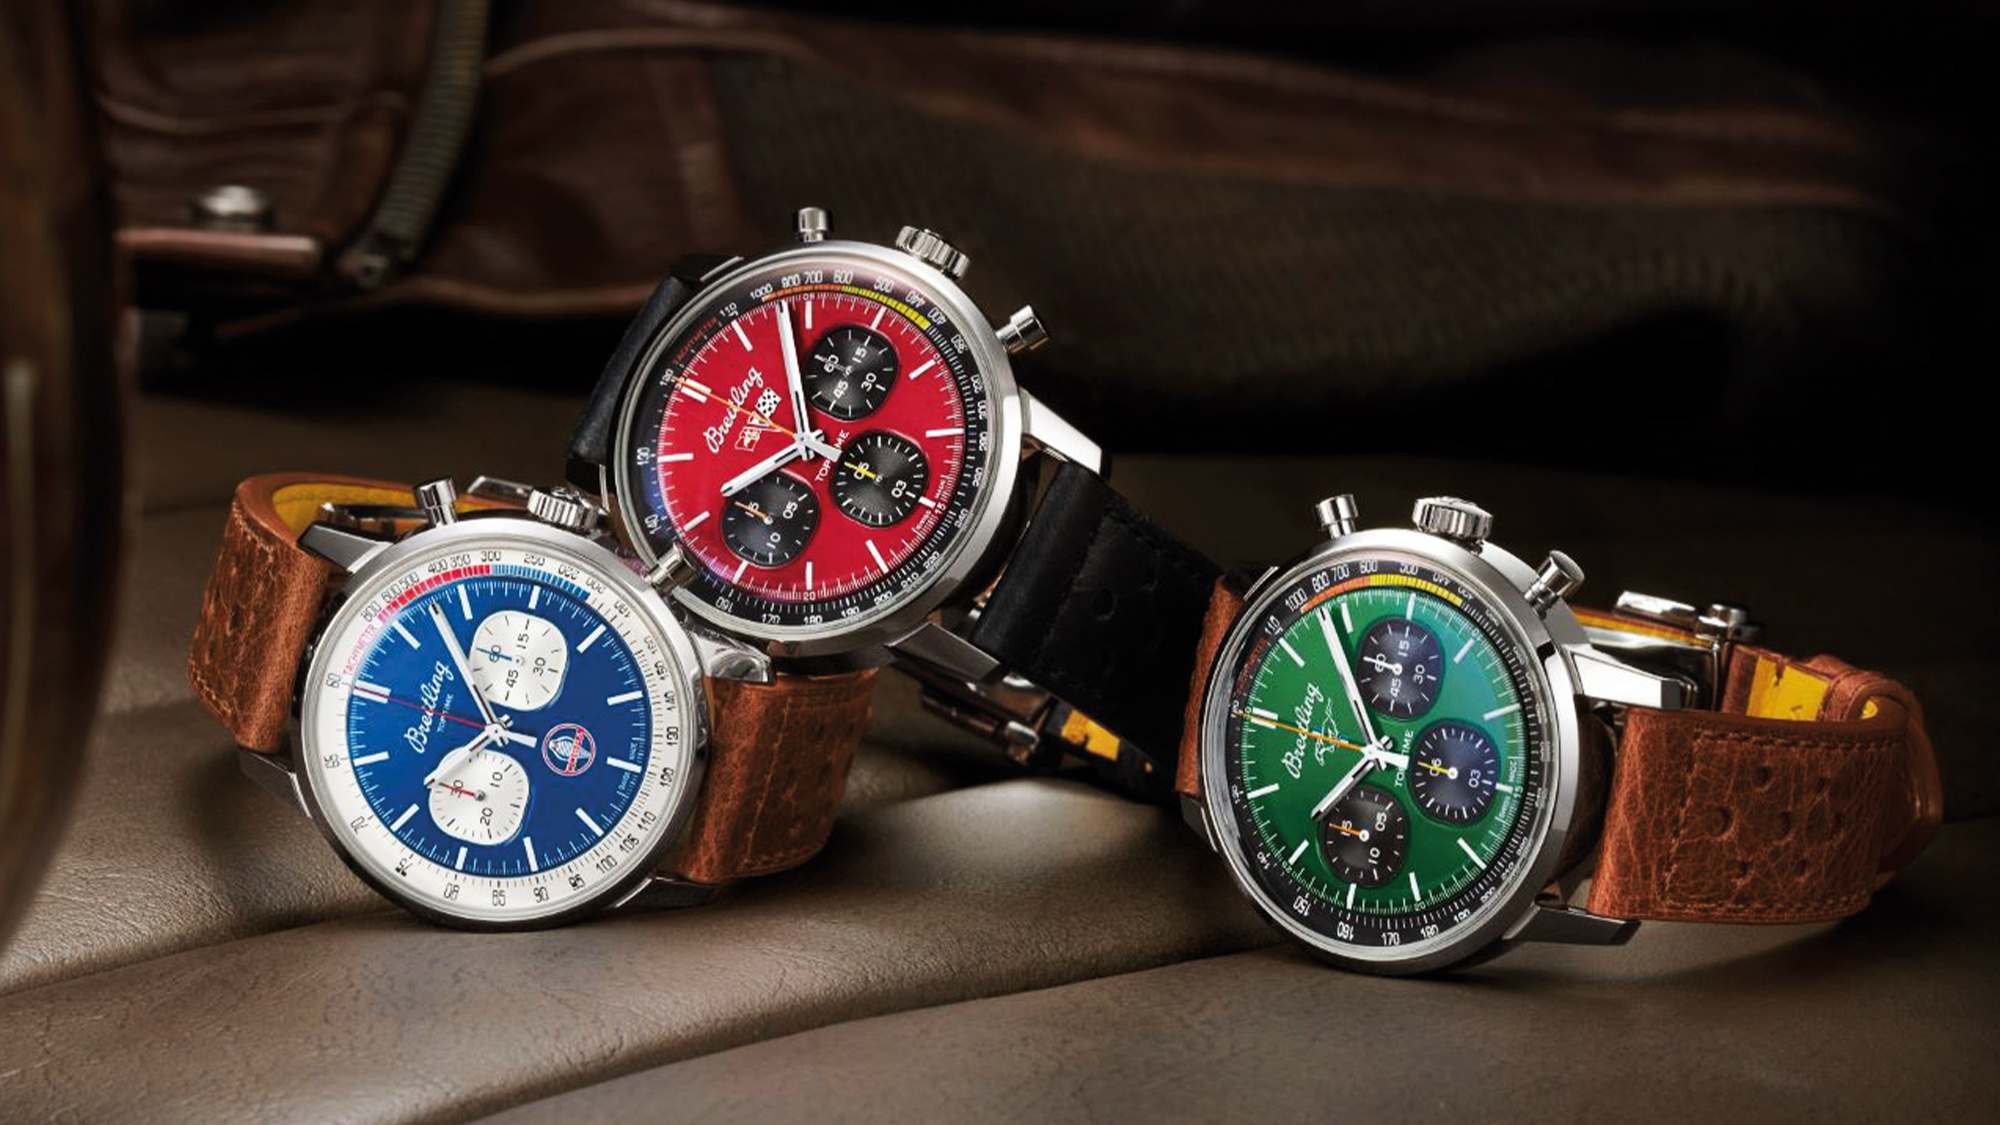 Breitling top time classic cars watches